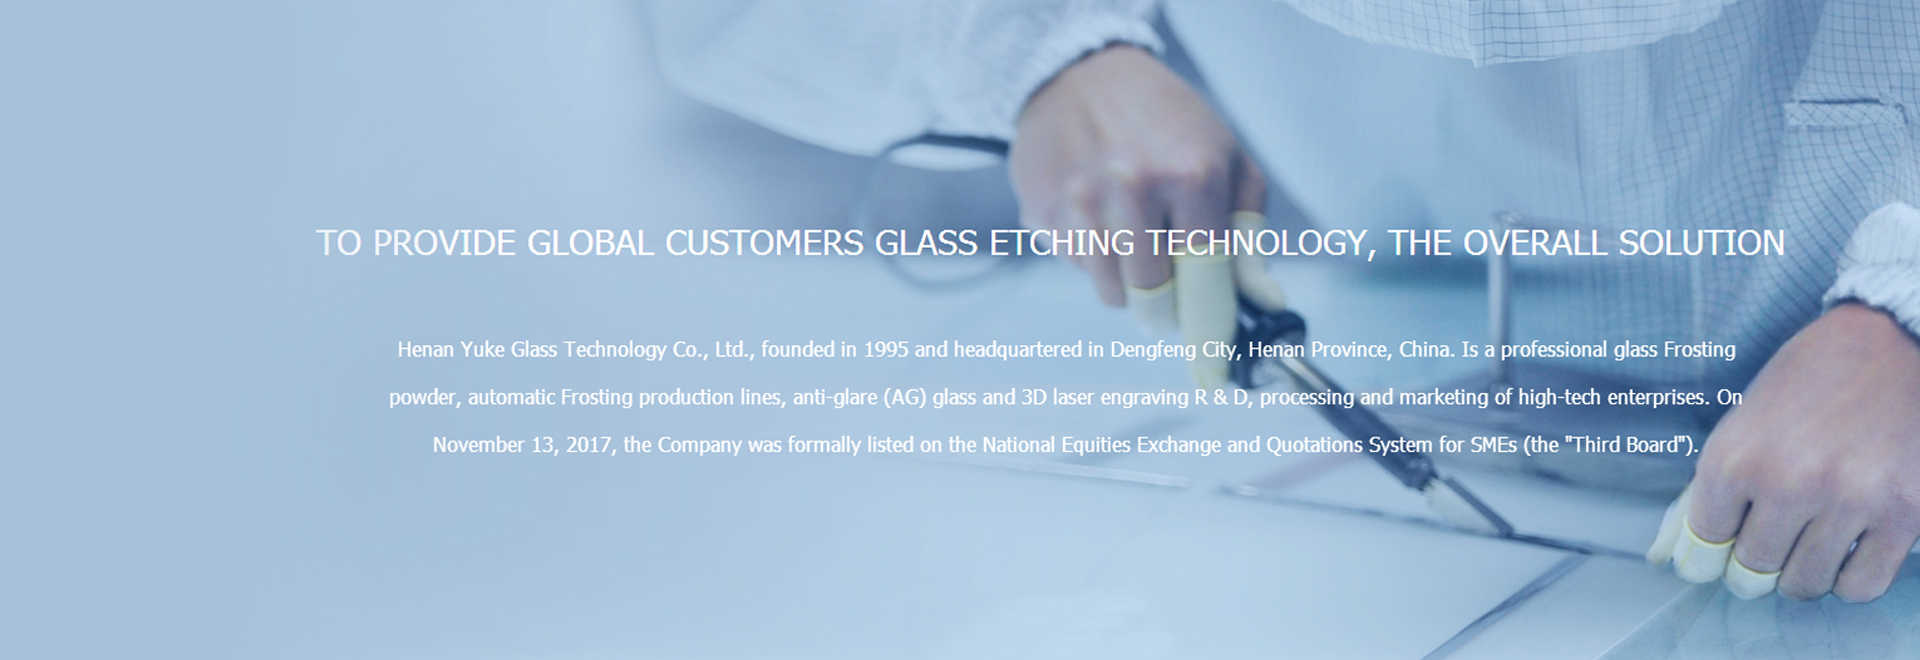 Henan Yuke Glass Technology Co., Ltd.-Henan Yuke Glass Technology Co., Ltd. - Henan Yuke Glass Technology Co., Ltd.: specializing in the production of glass Frosting production of glass frosted powder, automatic sanding lines and anti-glare (AG) glass production, bottle glass frosted powder, flat glass frosted powder, water-based frosted powder, handicrafts and Lighting high-tech enterprise with frosted powder.